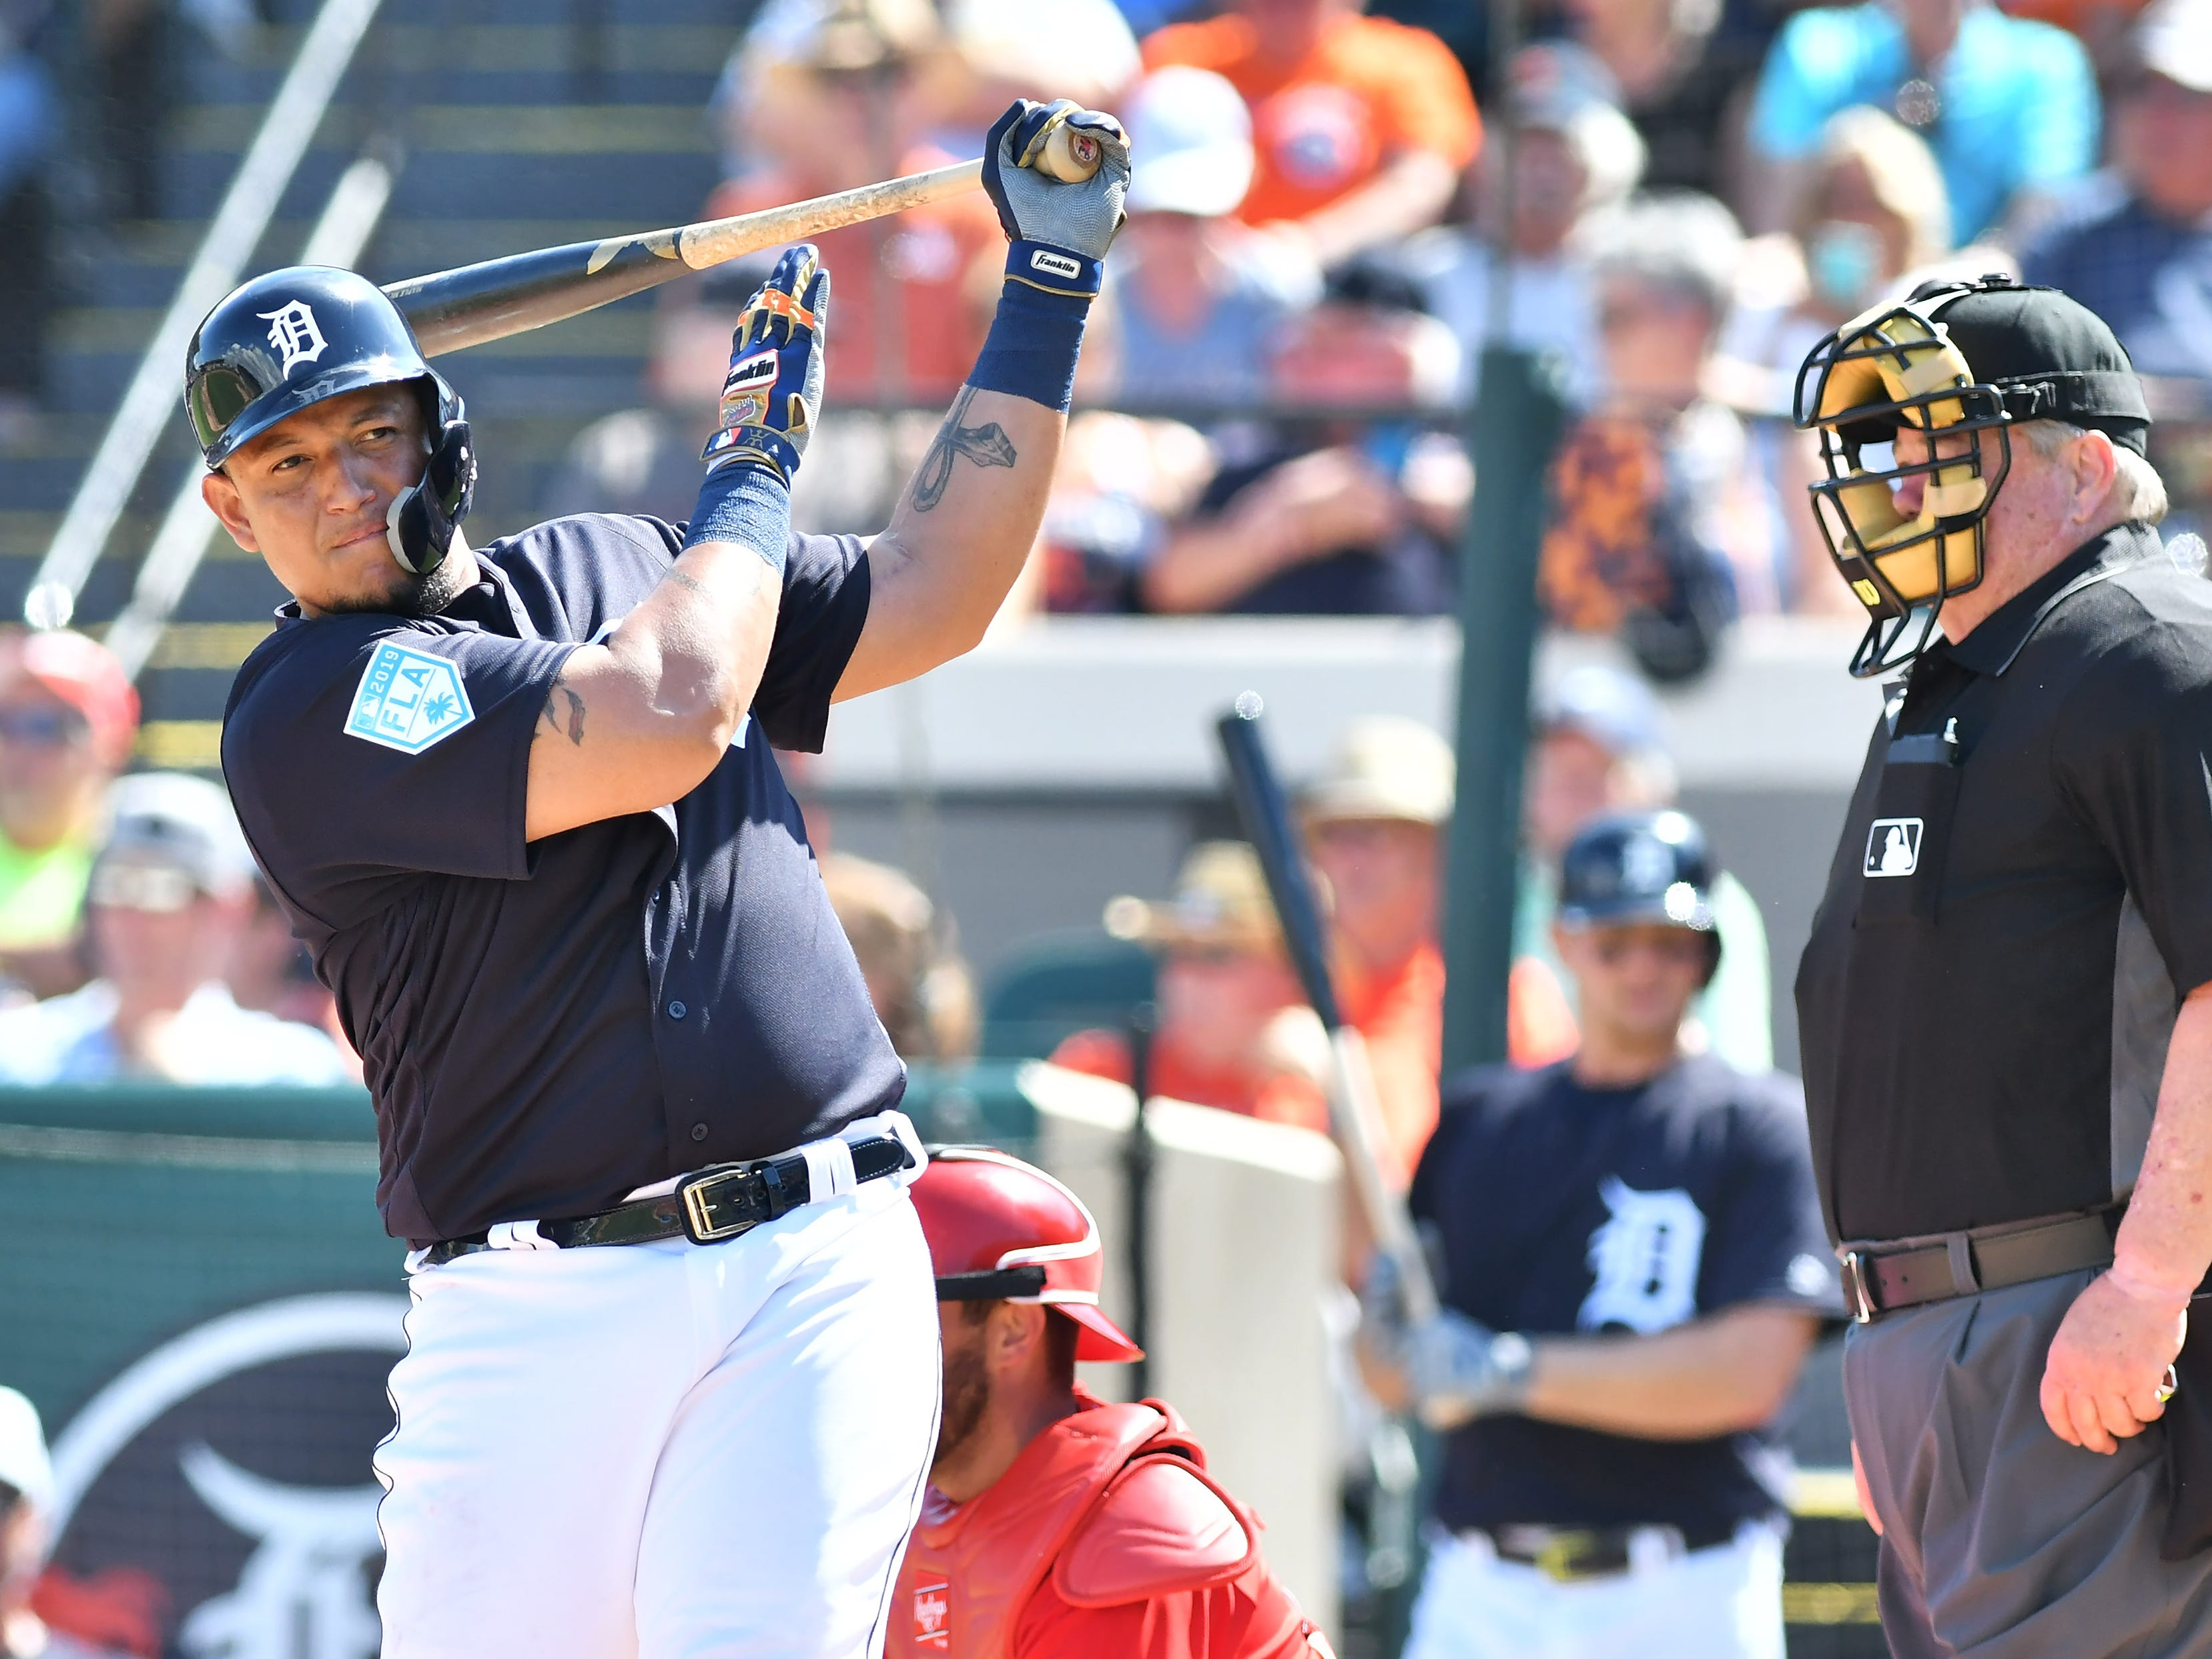 Tigers' Miguel Cabrera loosens up before his at bat in the second inning.